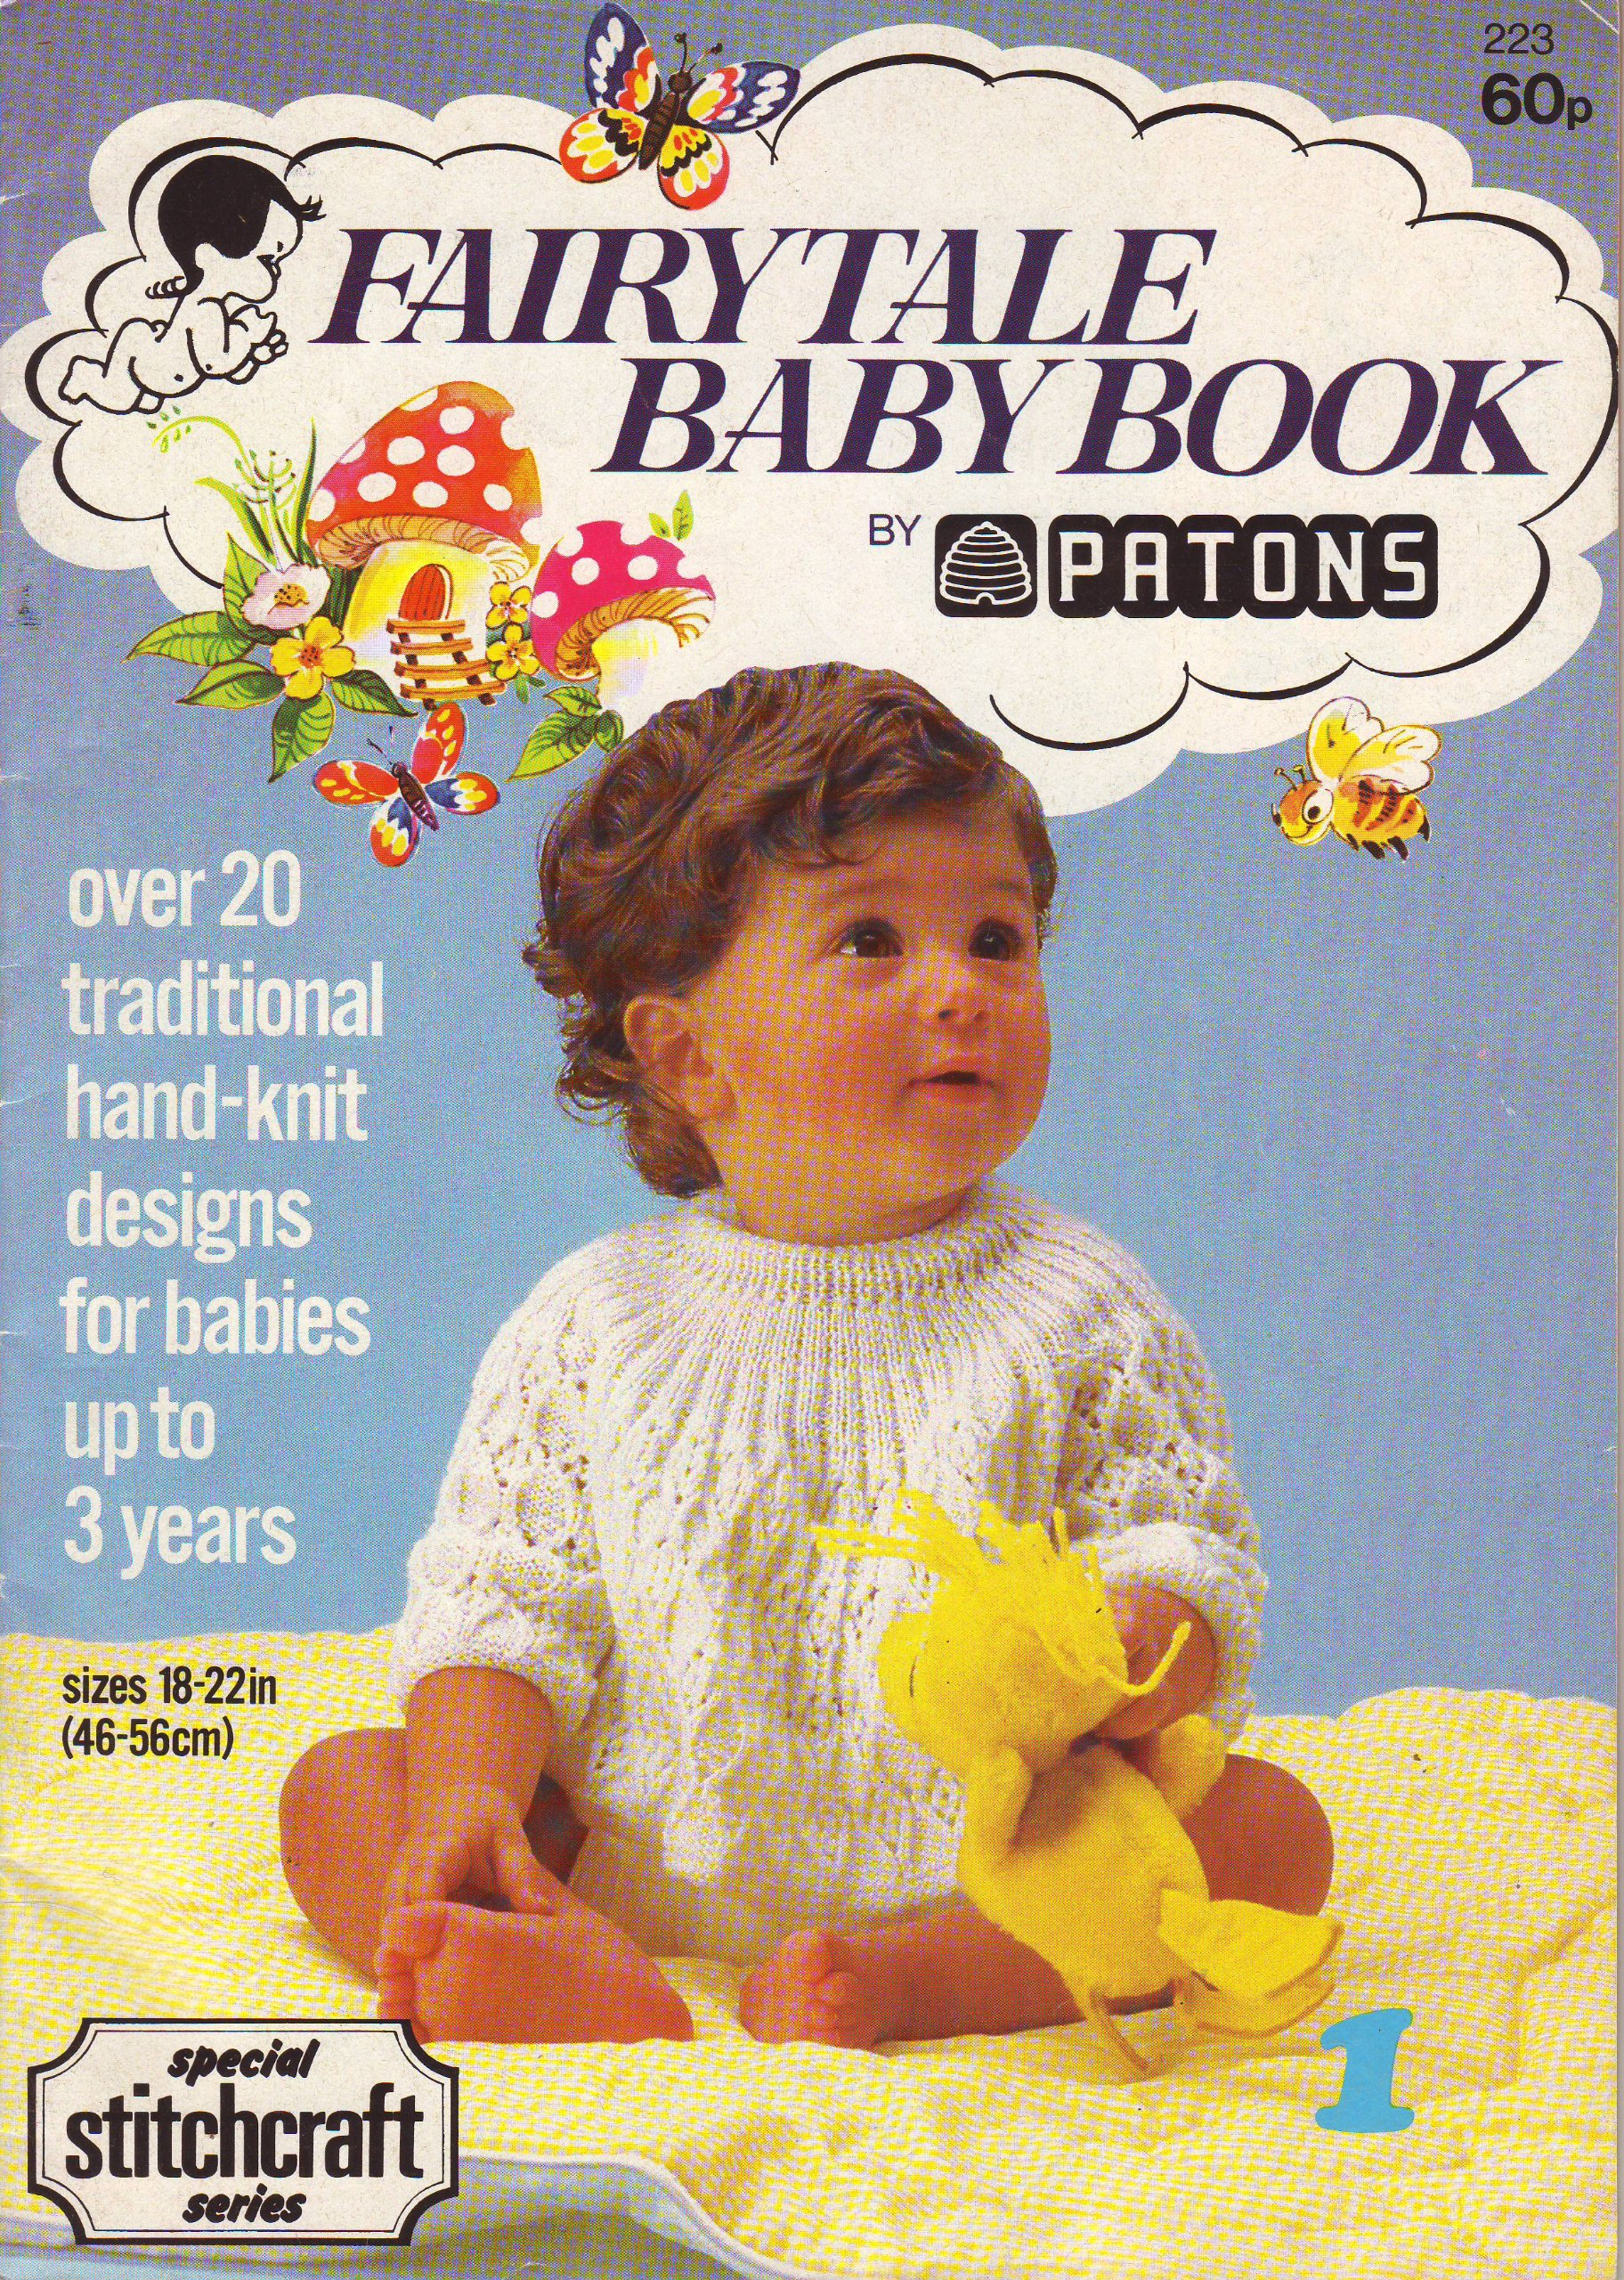 4a664a27f09e Patons Fairytale Baby Book 22 designs for Baby and Cildren up to age ...